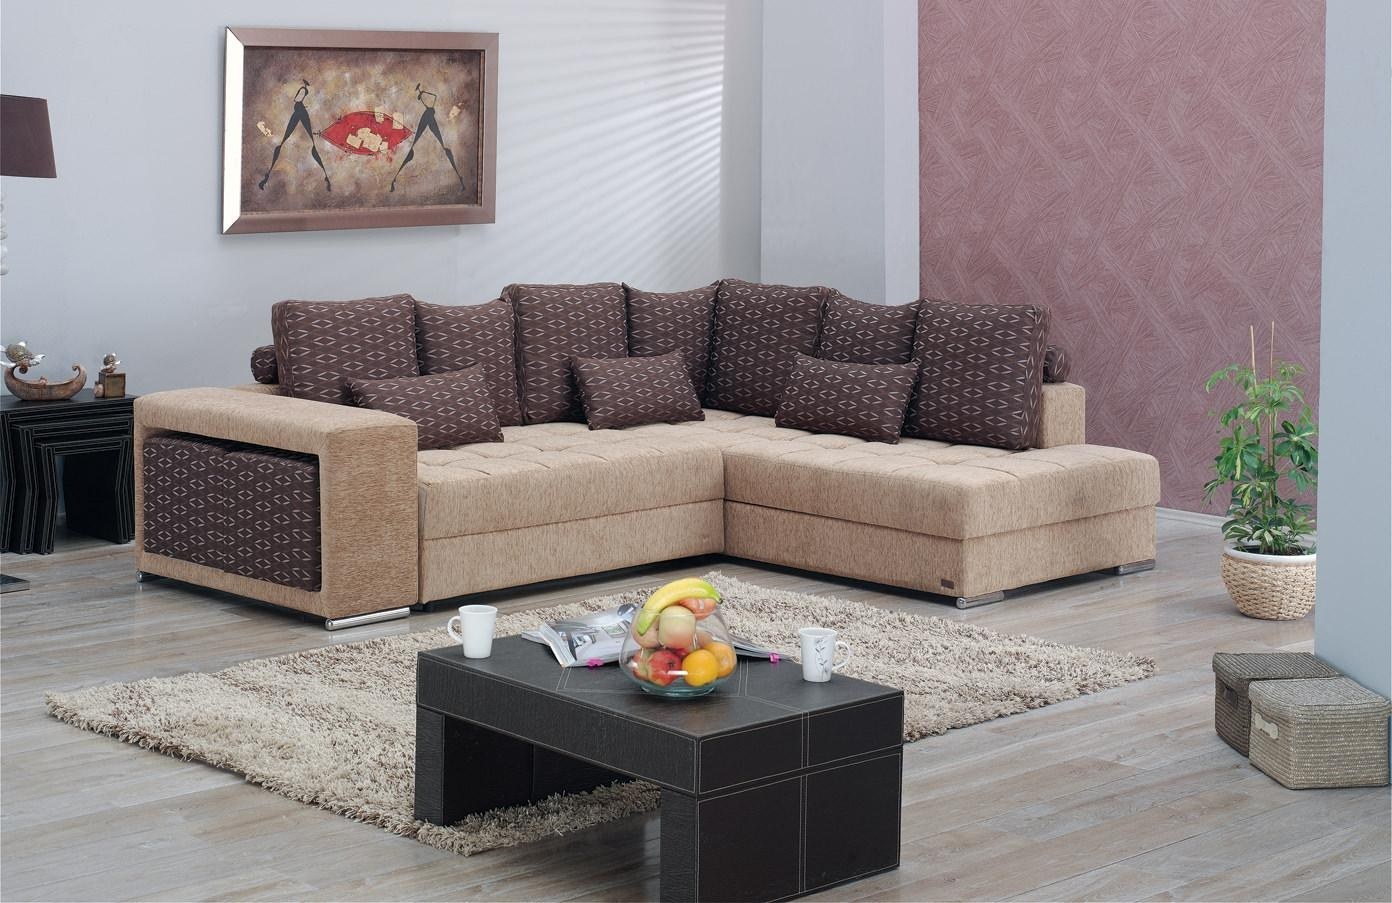 sofa furniture in los angeles diamond majestic bed 20 inspirations sectional sofas ideas